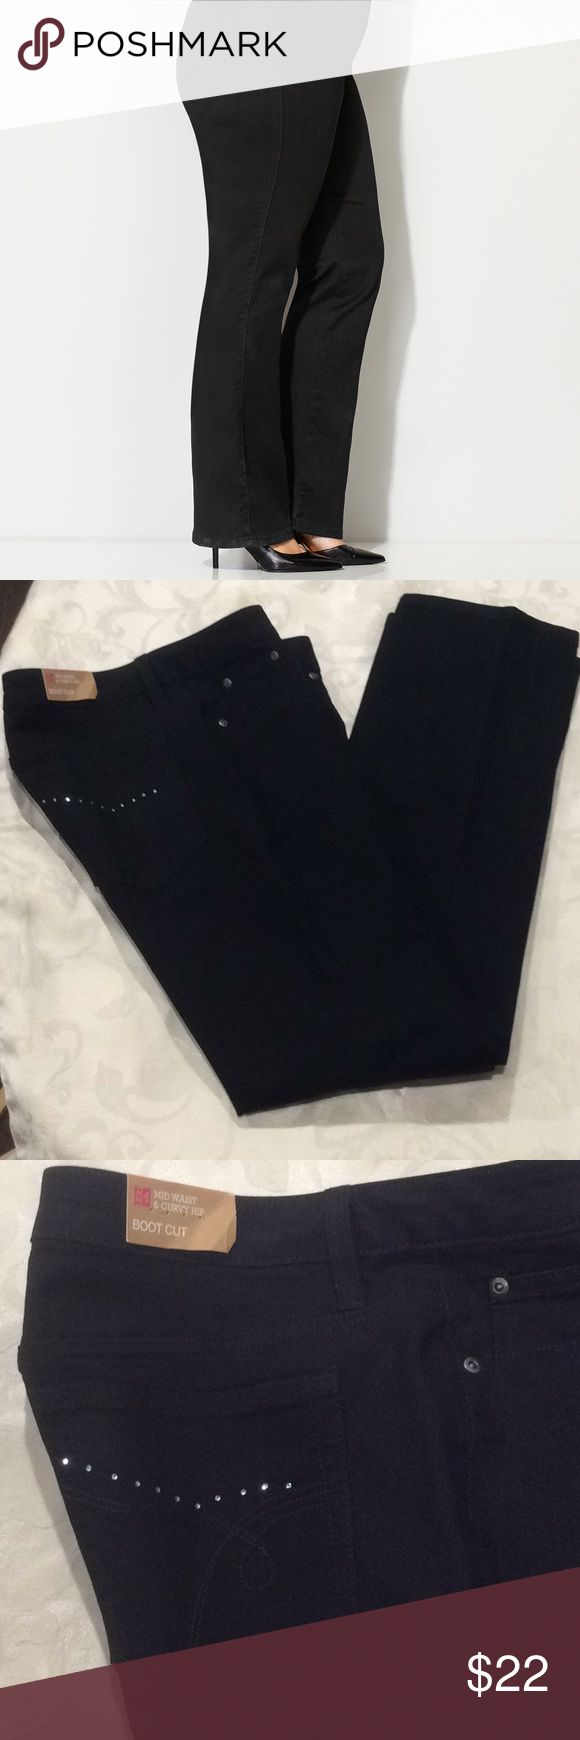 "Merona Fit 4 Black Jeans #  Brand: Merona  Size: 8R  Fit 4: Mid-waist and curvy hip  Style: Bootcut  Features: Design and faux rhinestones on back pockets  Material: 57% Cotton, 41% Polyester, 2% Spandex  Inseam: approx. 33""  Bootleg: approx. 9"" wide  Great new pair of jeans! Merona Jeans Boot Cut"